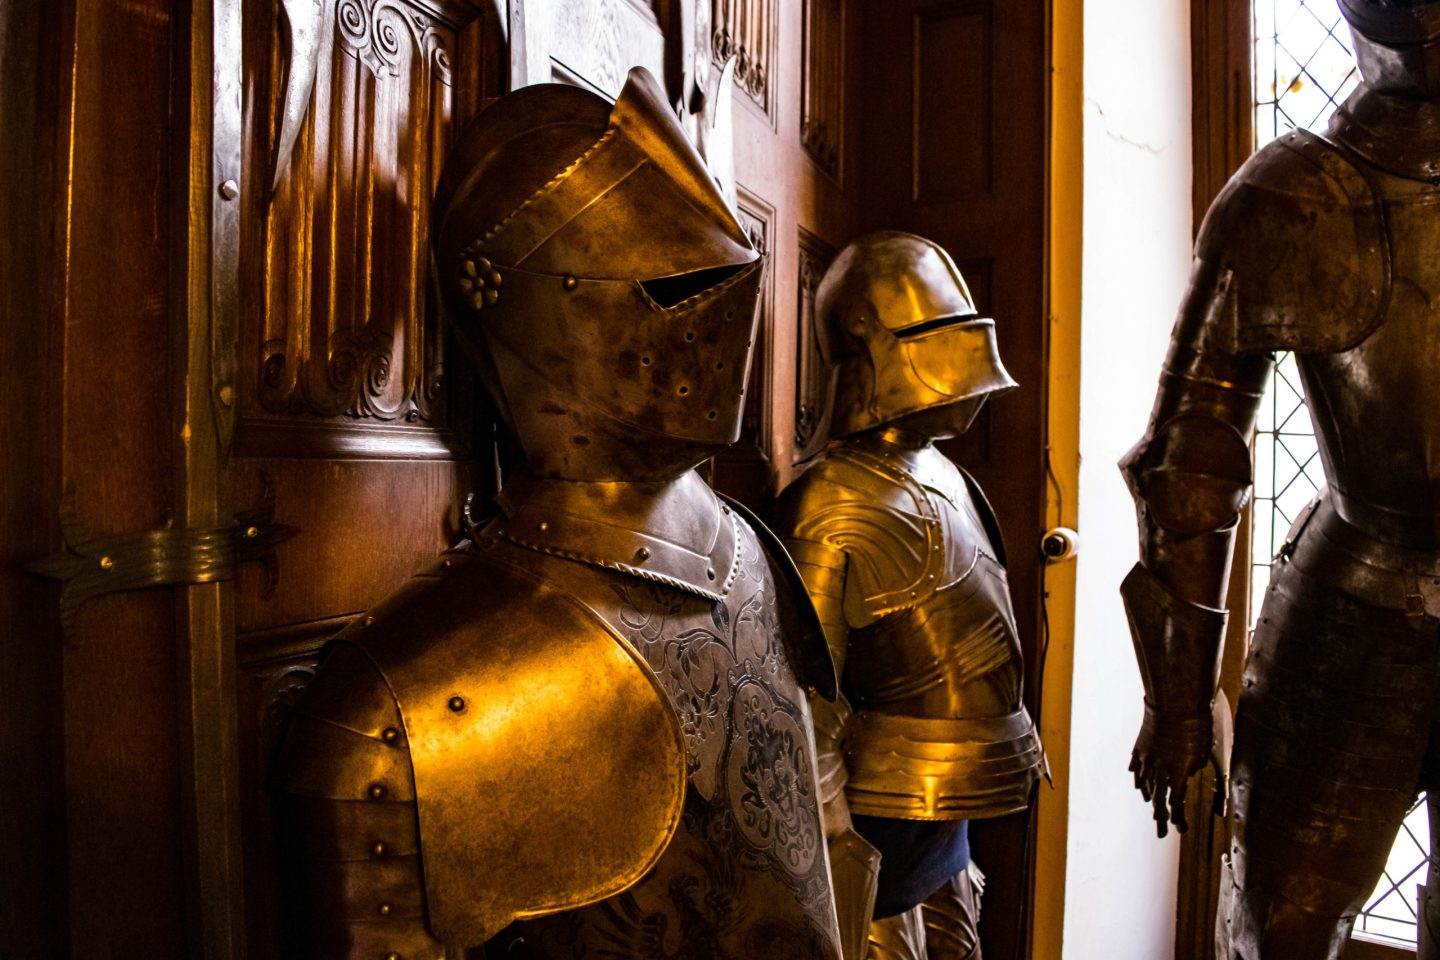 Suits of armour are everywhere